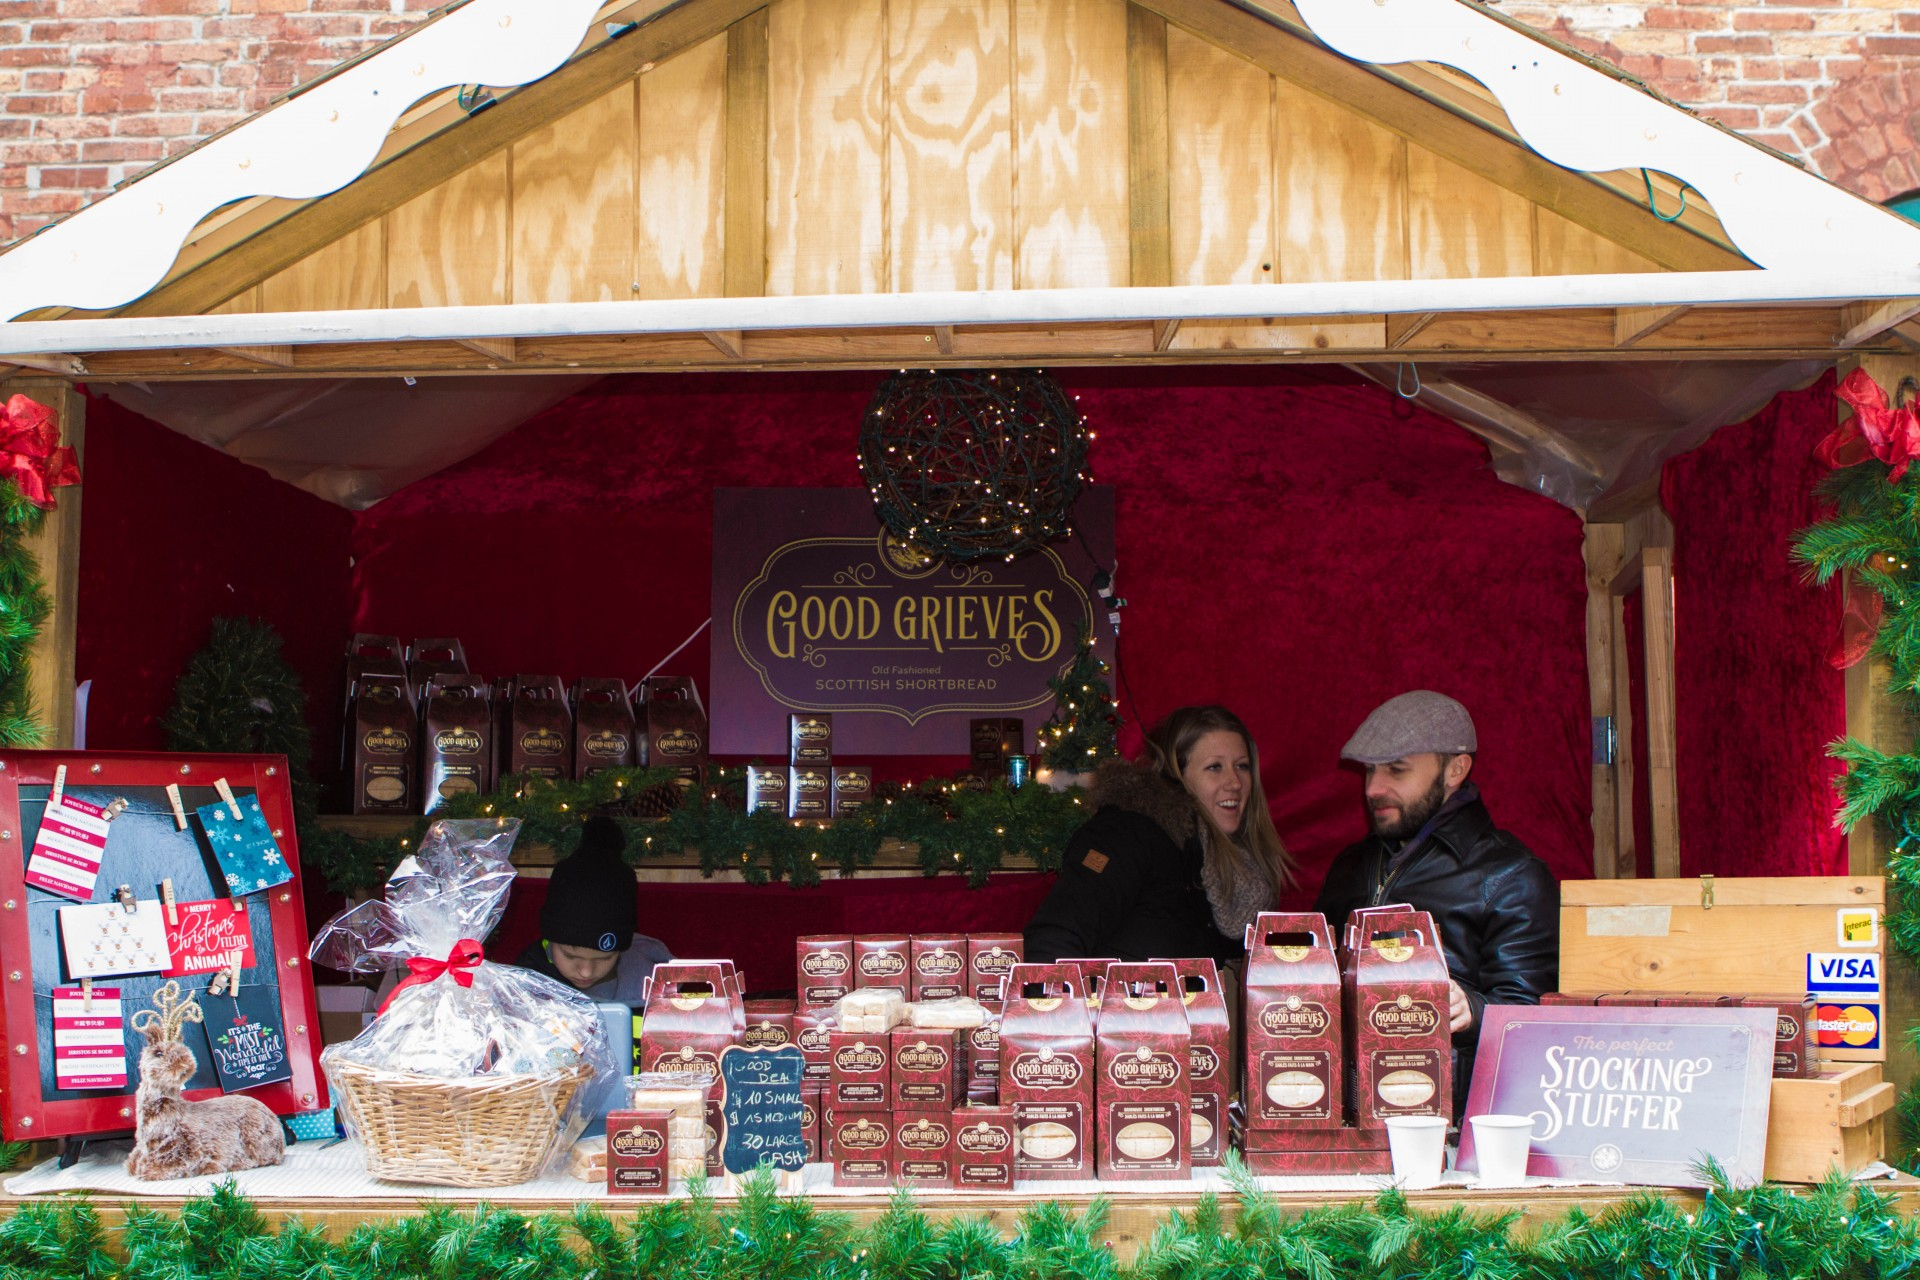 A shortbread stall at the Toronto Christmas Market in the Distillery District Toronto